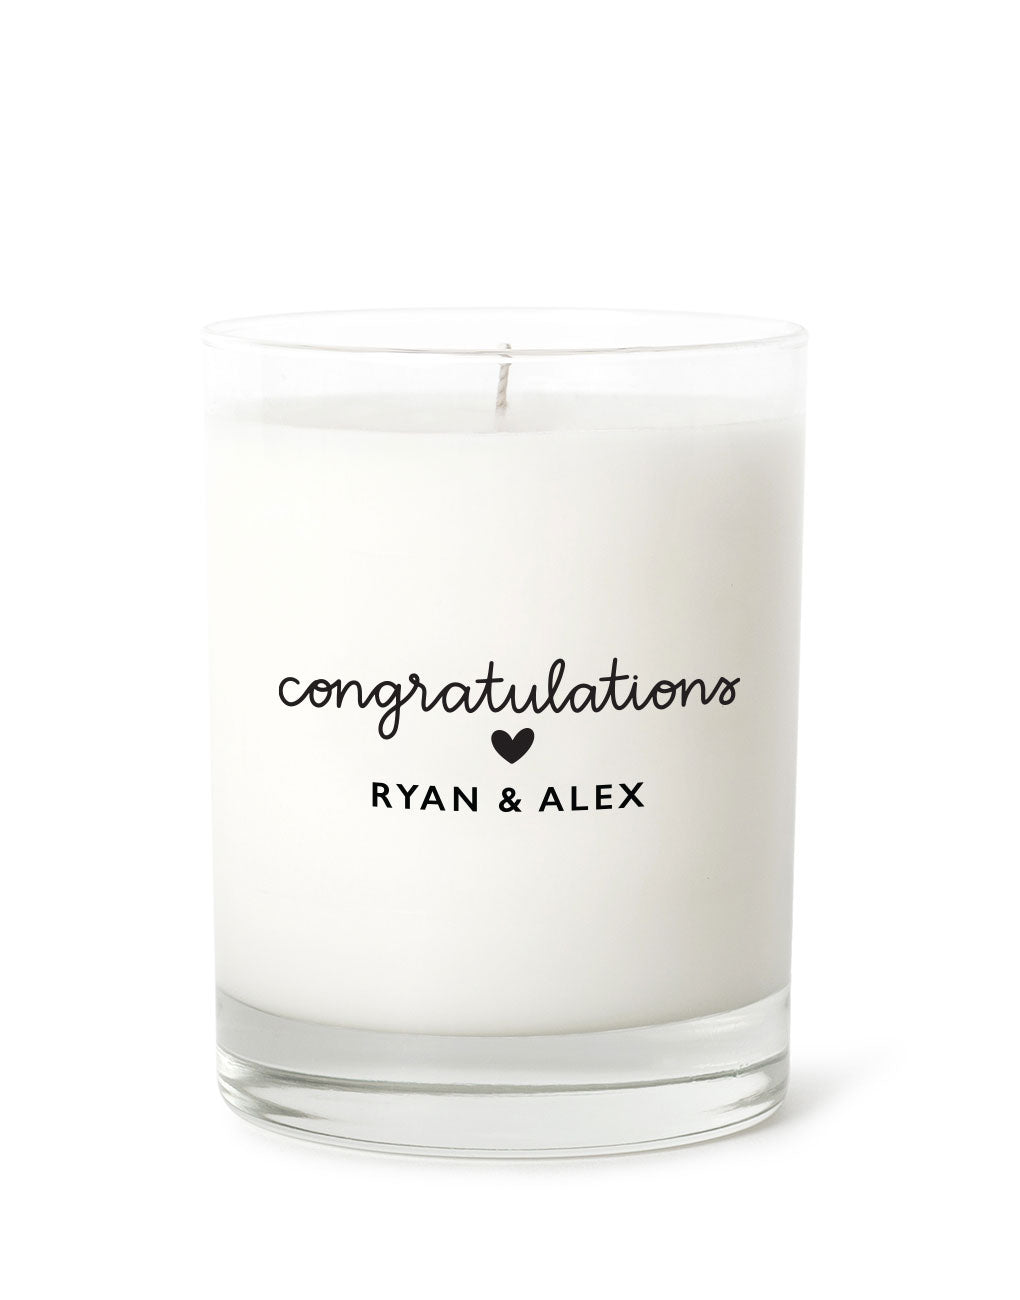 Personalized Congratulations Candle | The Little Market